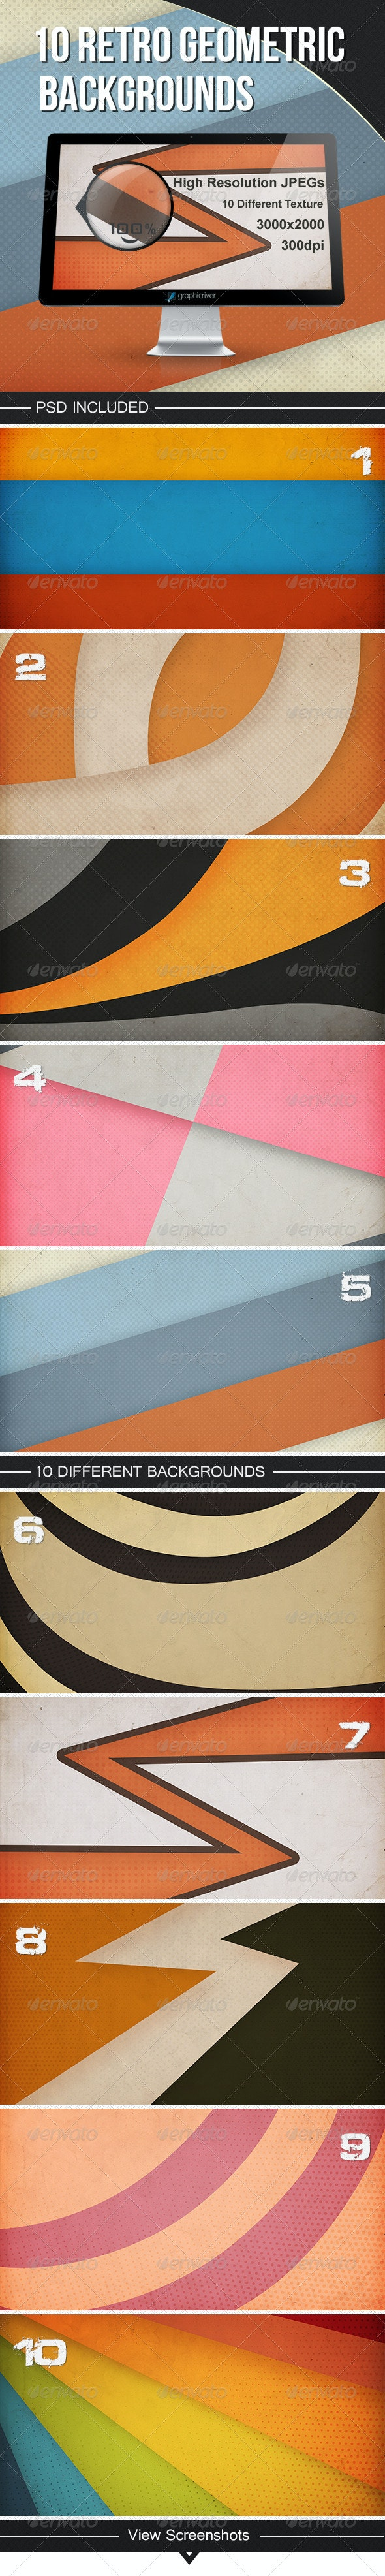 10 Retro geometric backgrounds - Backgrounds Graphics